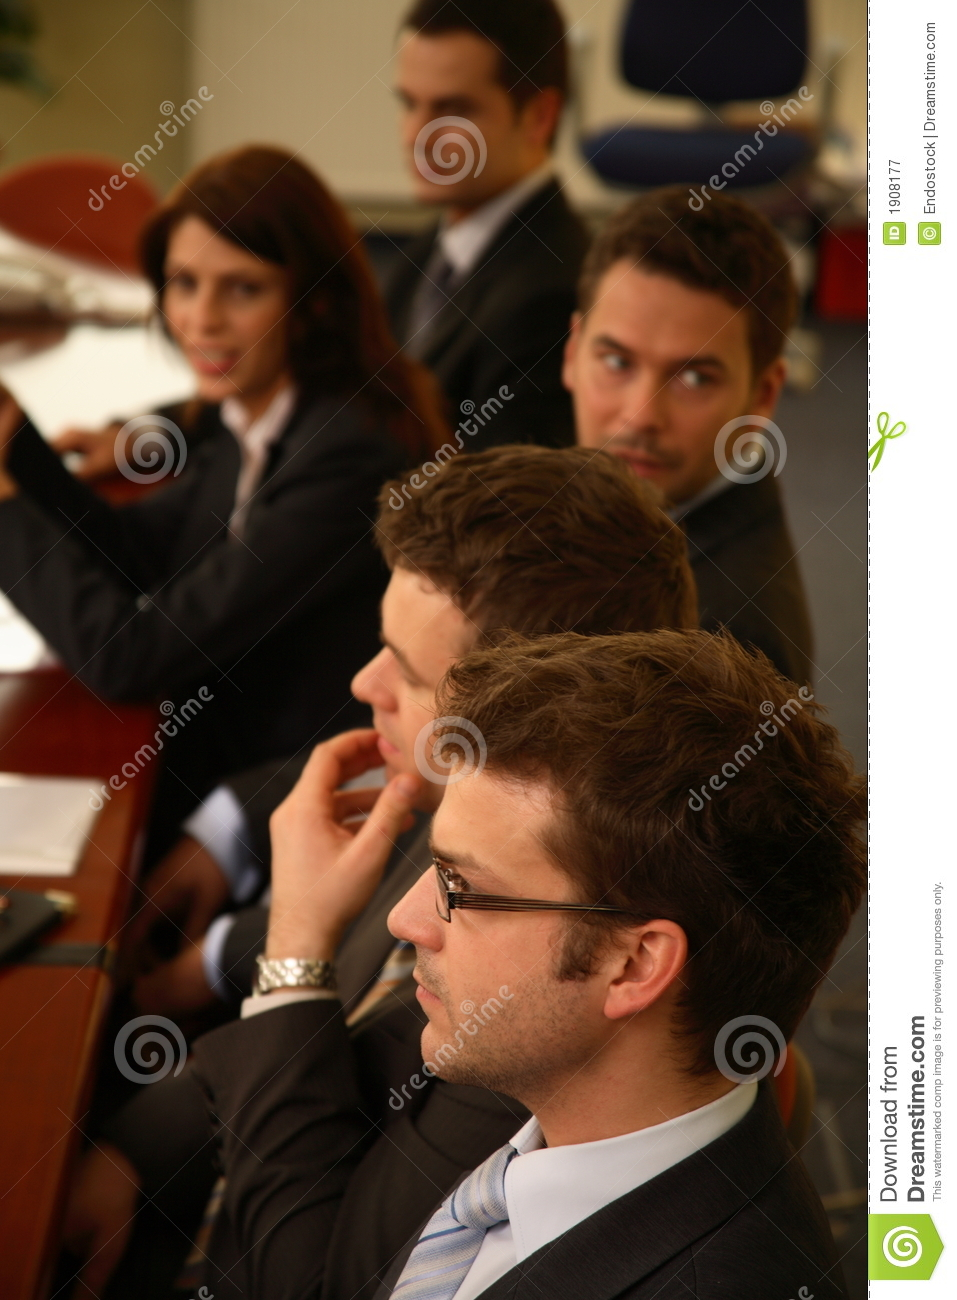 Executives In a Conference